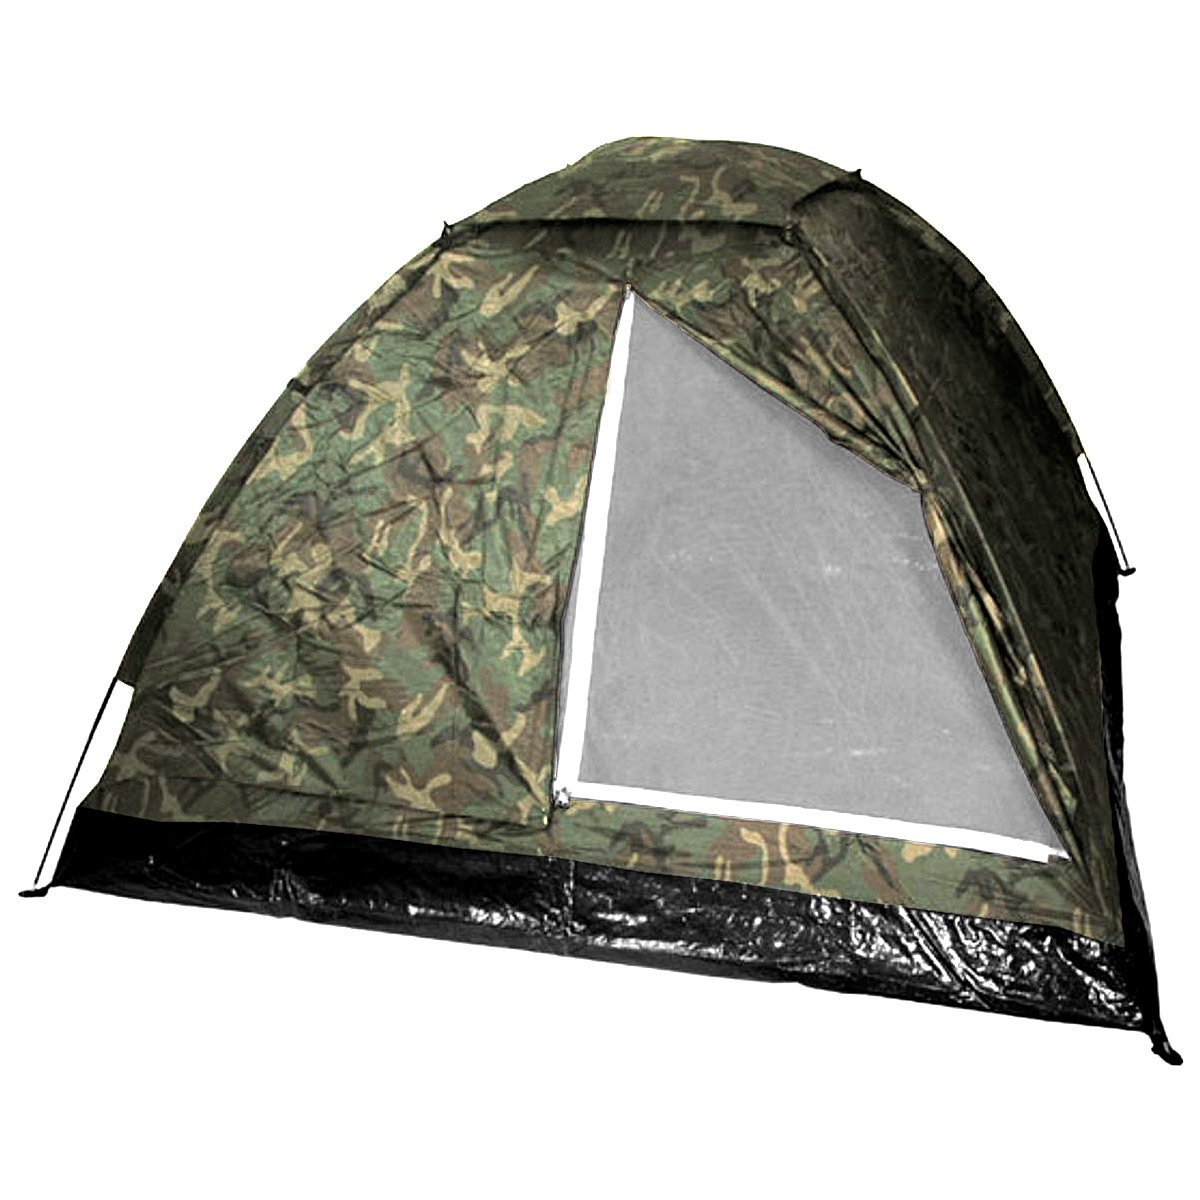 MFH 3 Person Tent Monodom with Mosquito Net Woodland MFH 3 Person Tent Monodom with Mosquito Net Woodland  sc 1 st  Military 1st & MFH 3 Person Tent Monodom with Mosquito Net Woodland | Bashas ...